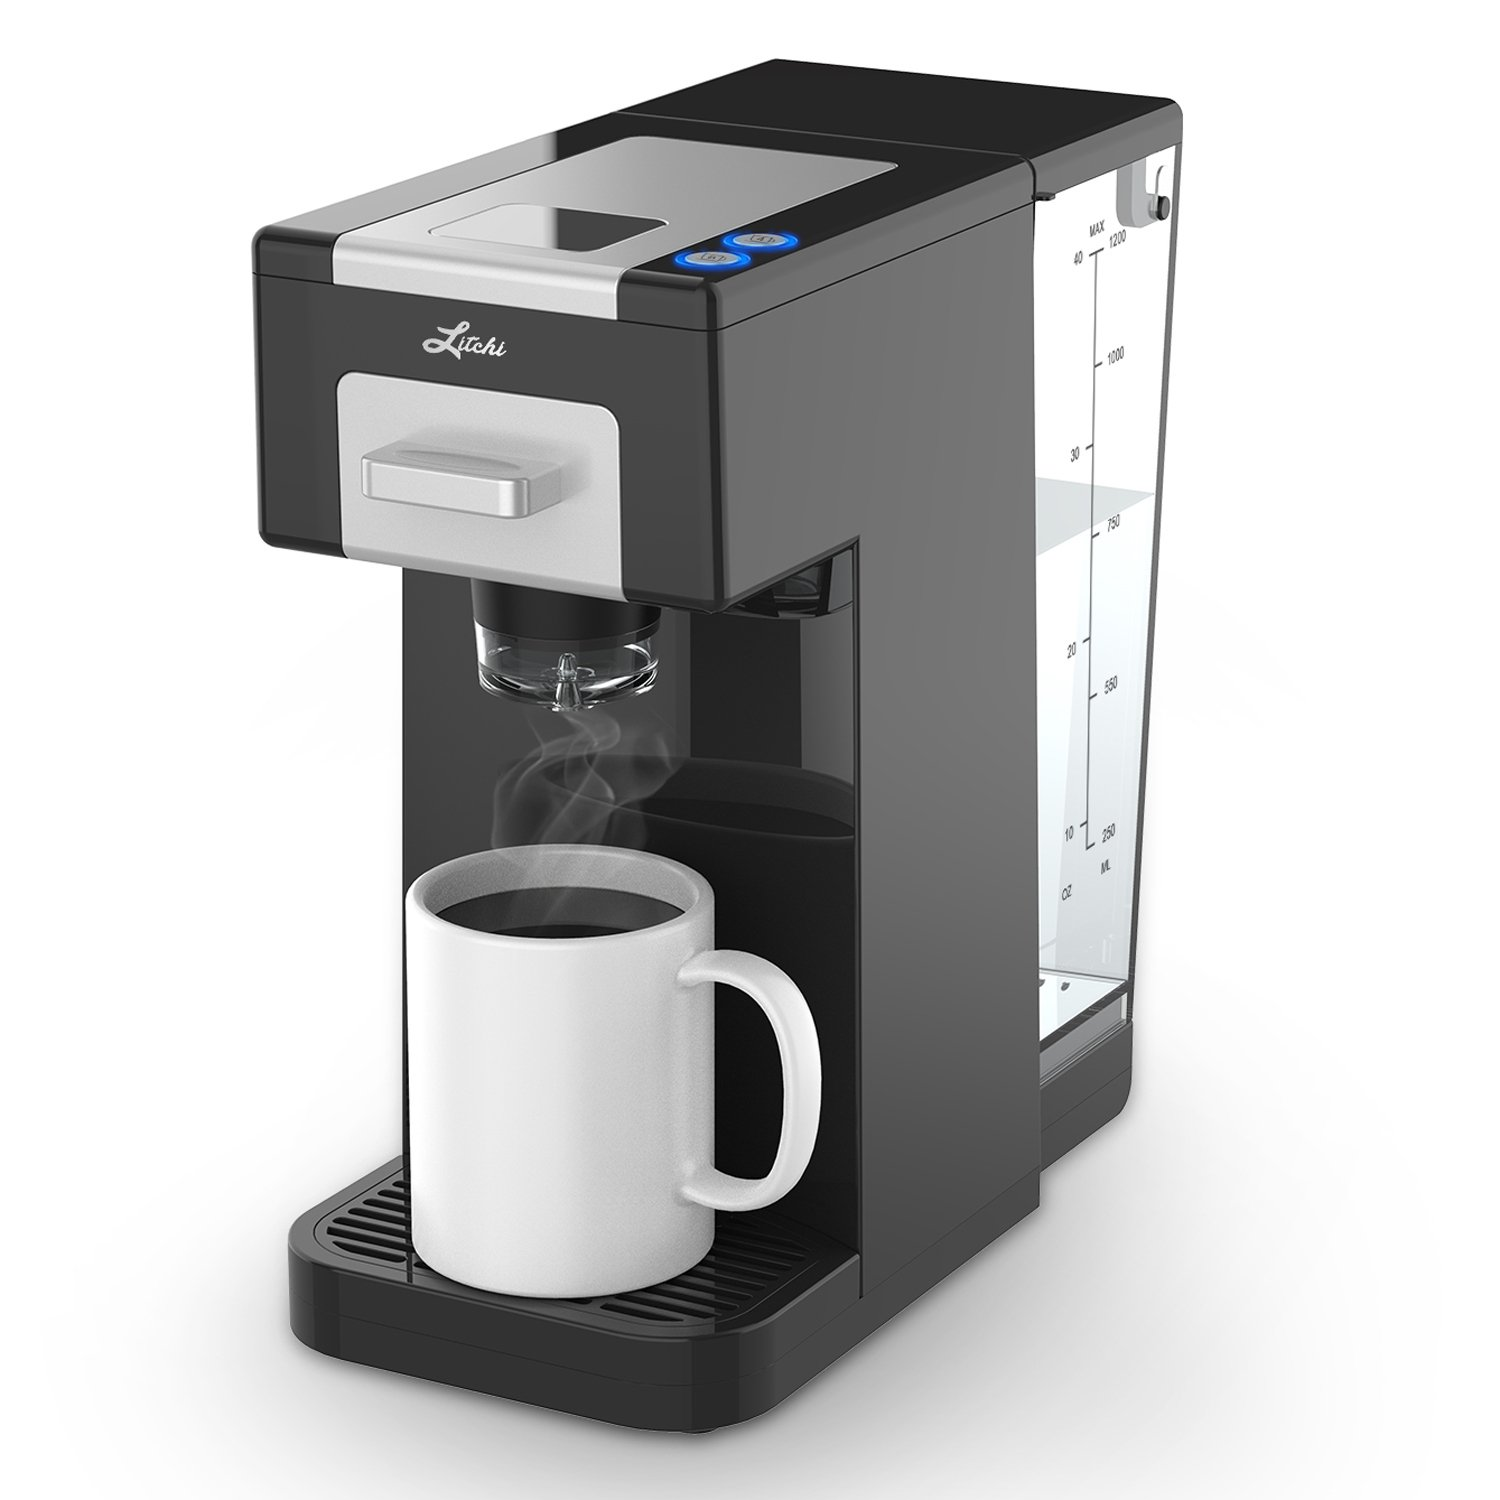 Litchi Single Serve Coffee Maker for Most Single Cup Pods Including K Cup Pods, Ground Coffee, 40 OZ Detachable Reservoir, 4 OZ, 8 OZ or Customized Brew Size, Black